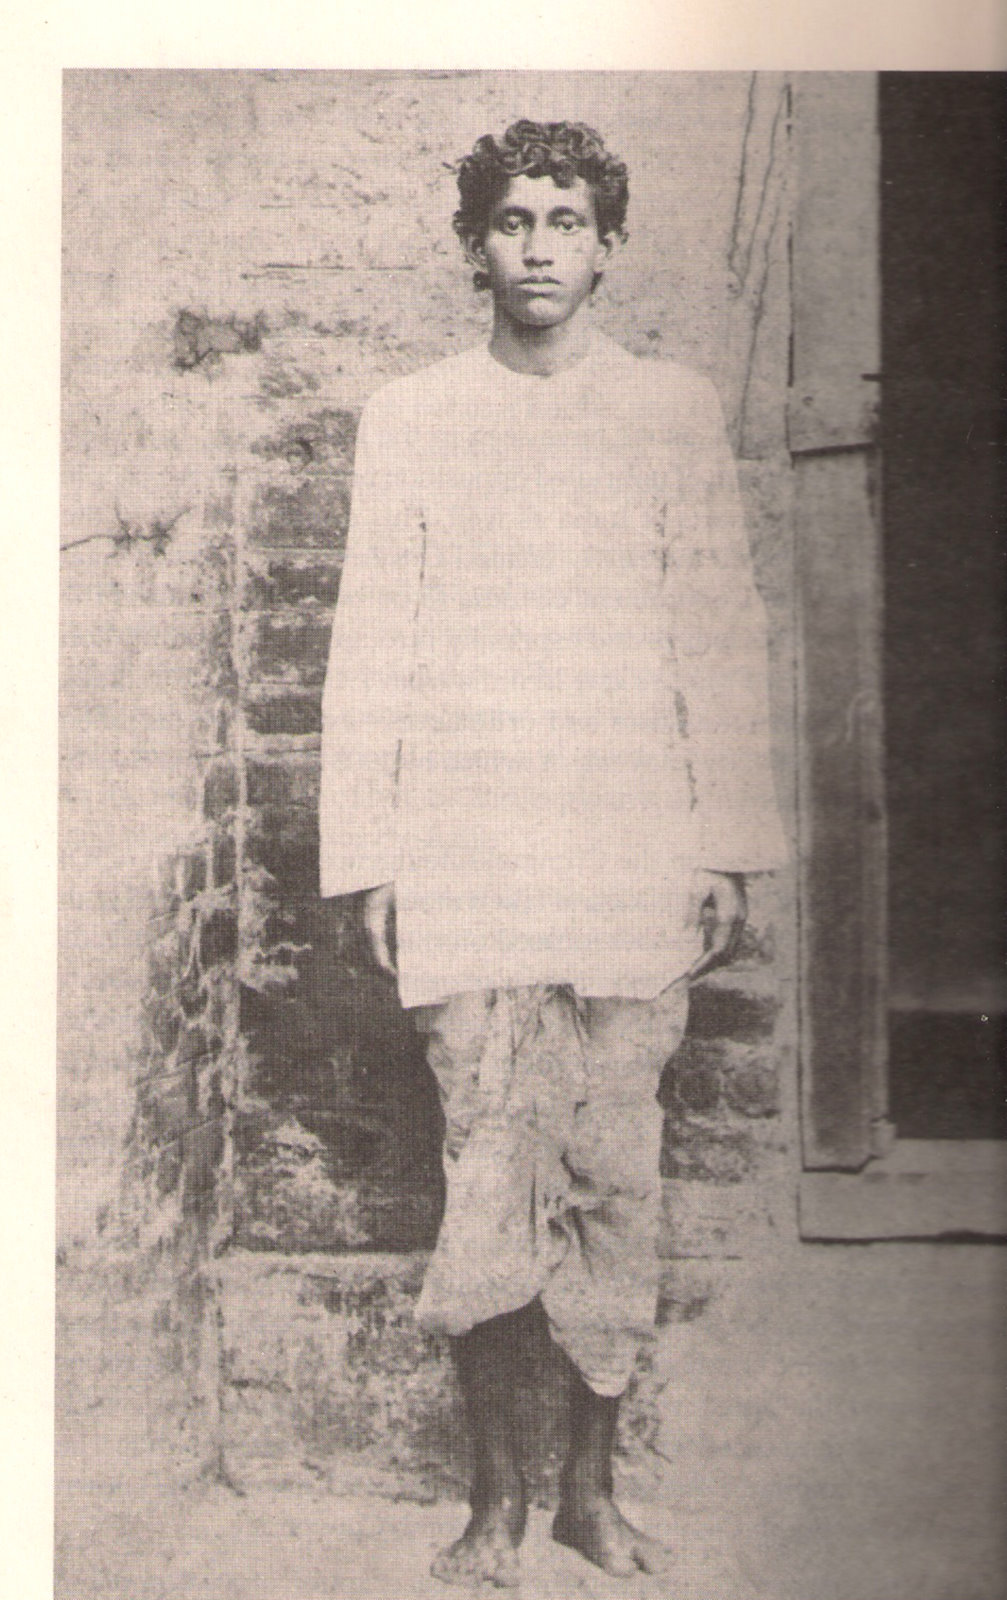 the gita and the dom of hindu history khudiram bose 1889 1906 was a young revolutionary from bengal he was brought up a deep knowledge of the hindu heritage and he was constantly pained